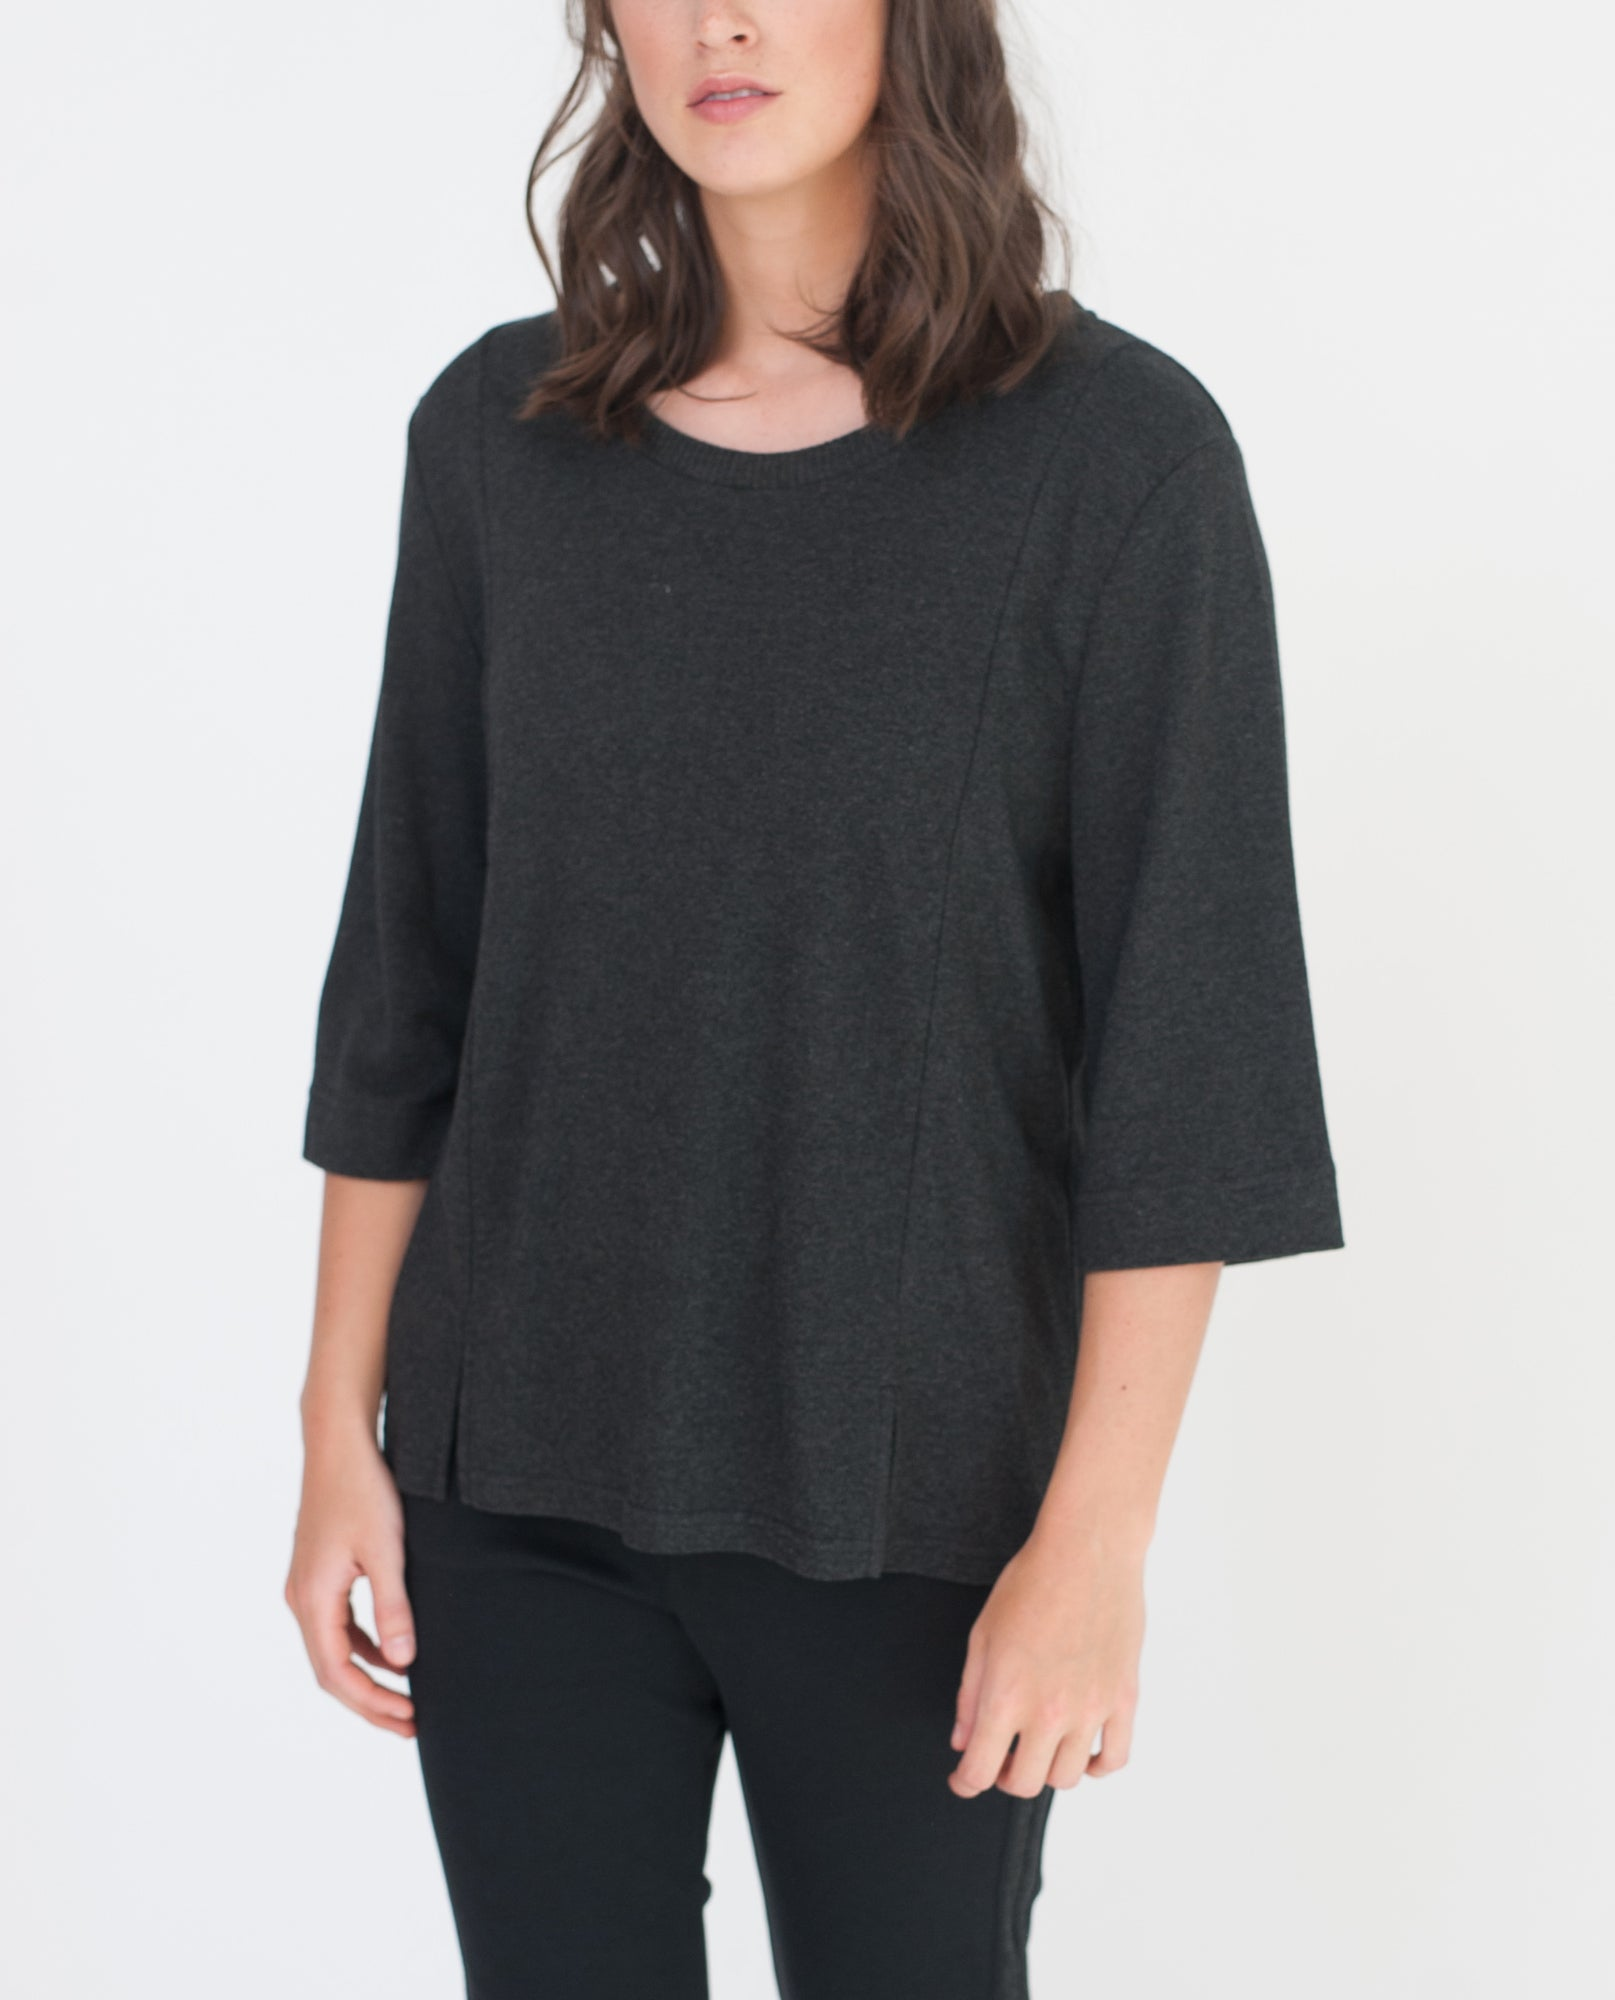 SIYA Lyocell And Cotton Top In Dark Grey from Beaumont Organic